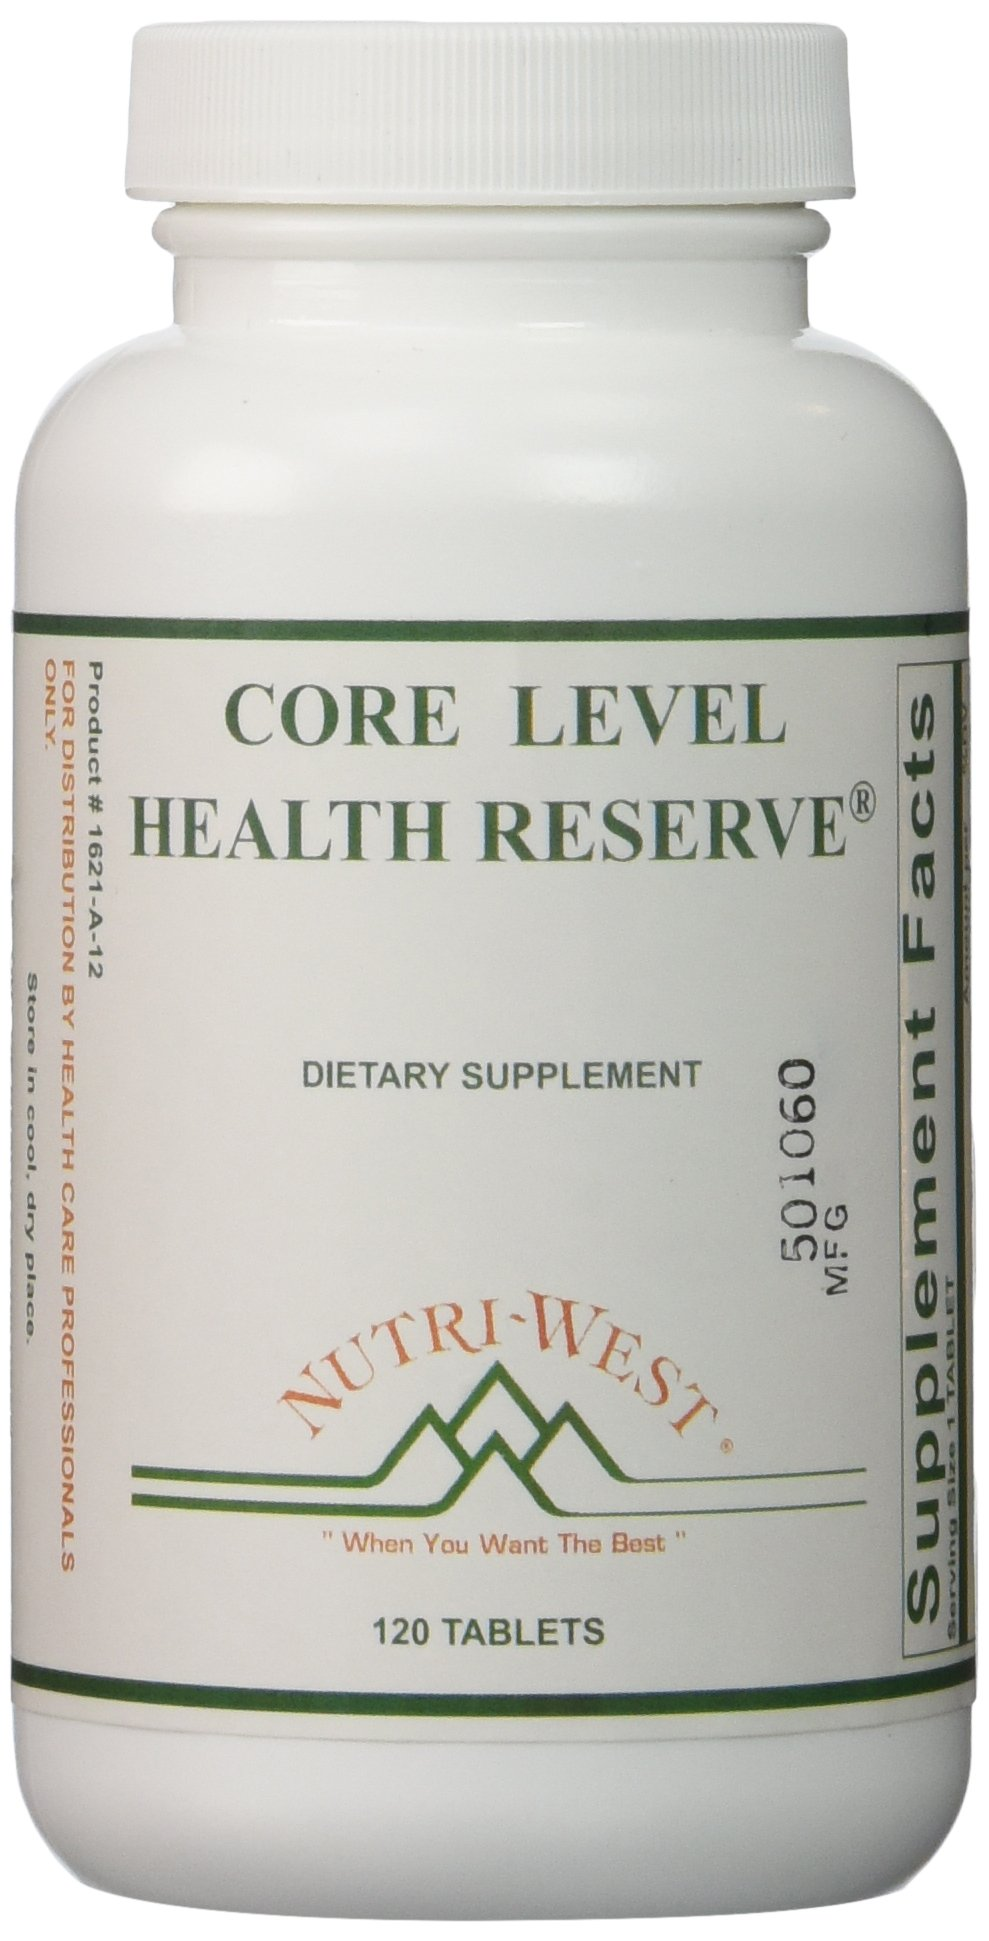 Core Level Health Reserve - 120 Tablets by Nutri West